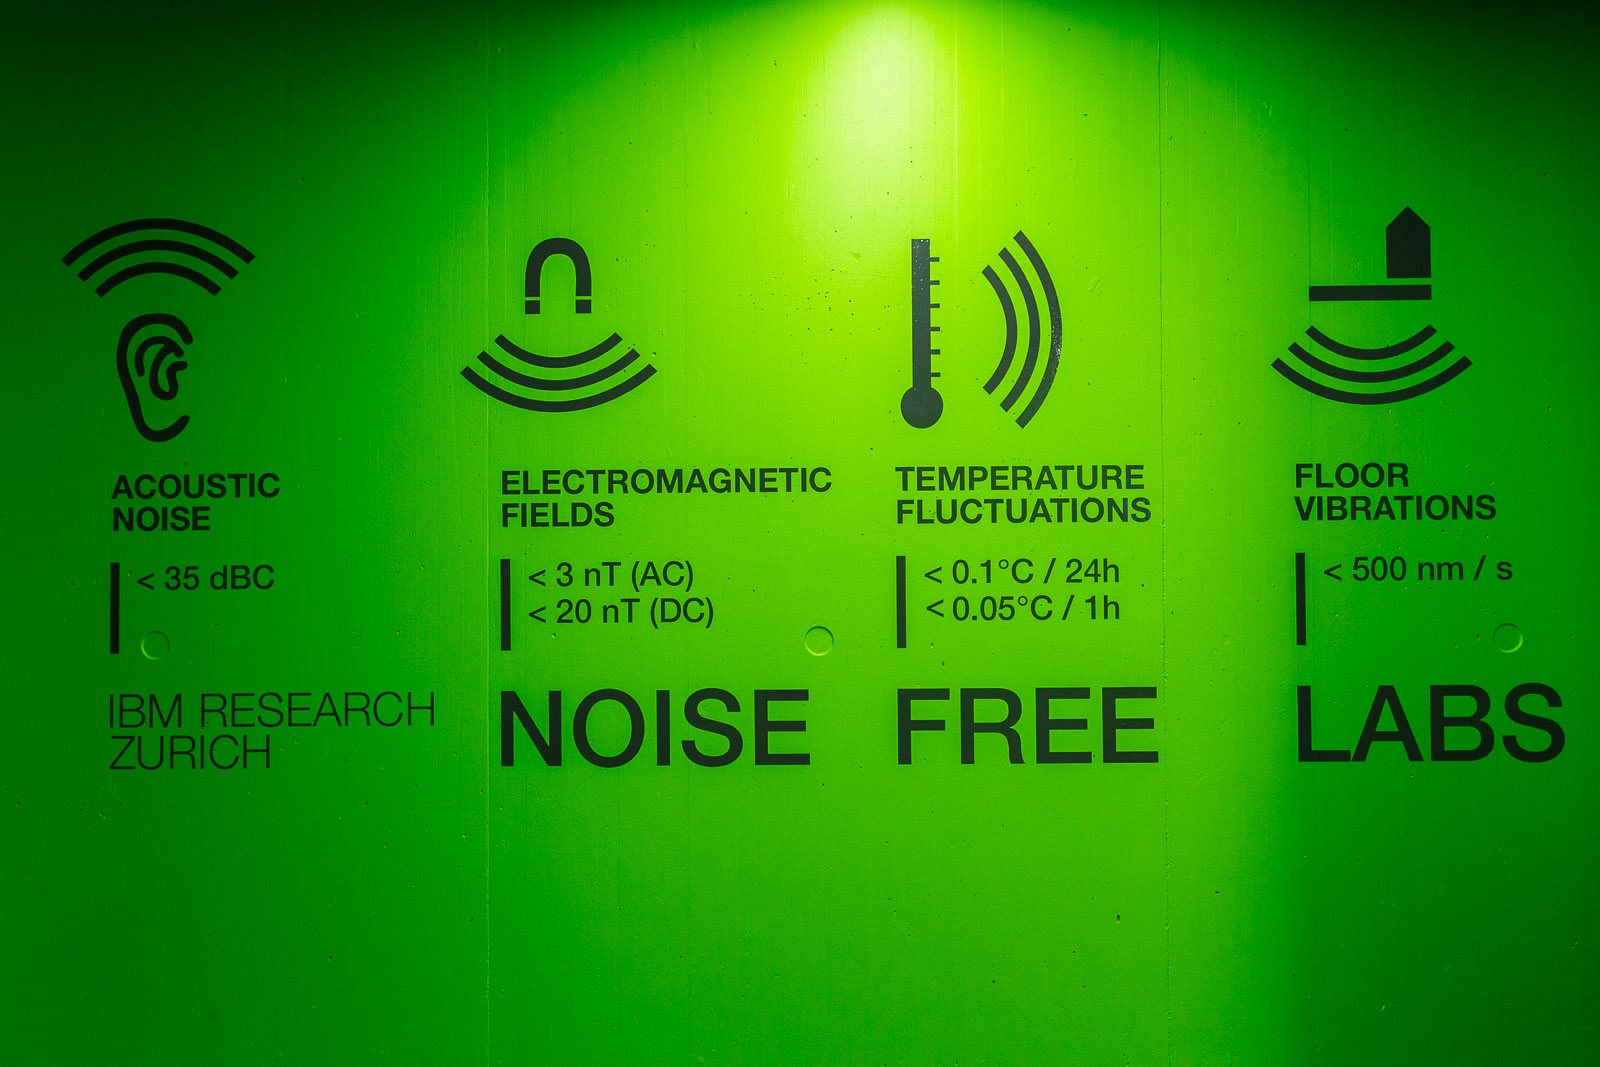 IBM's noise-free rooms are shielded from several types of disturbances.